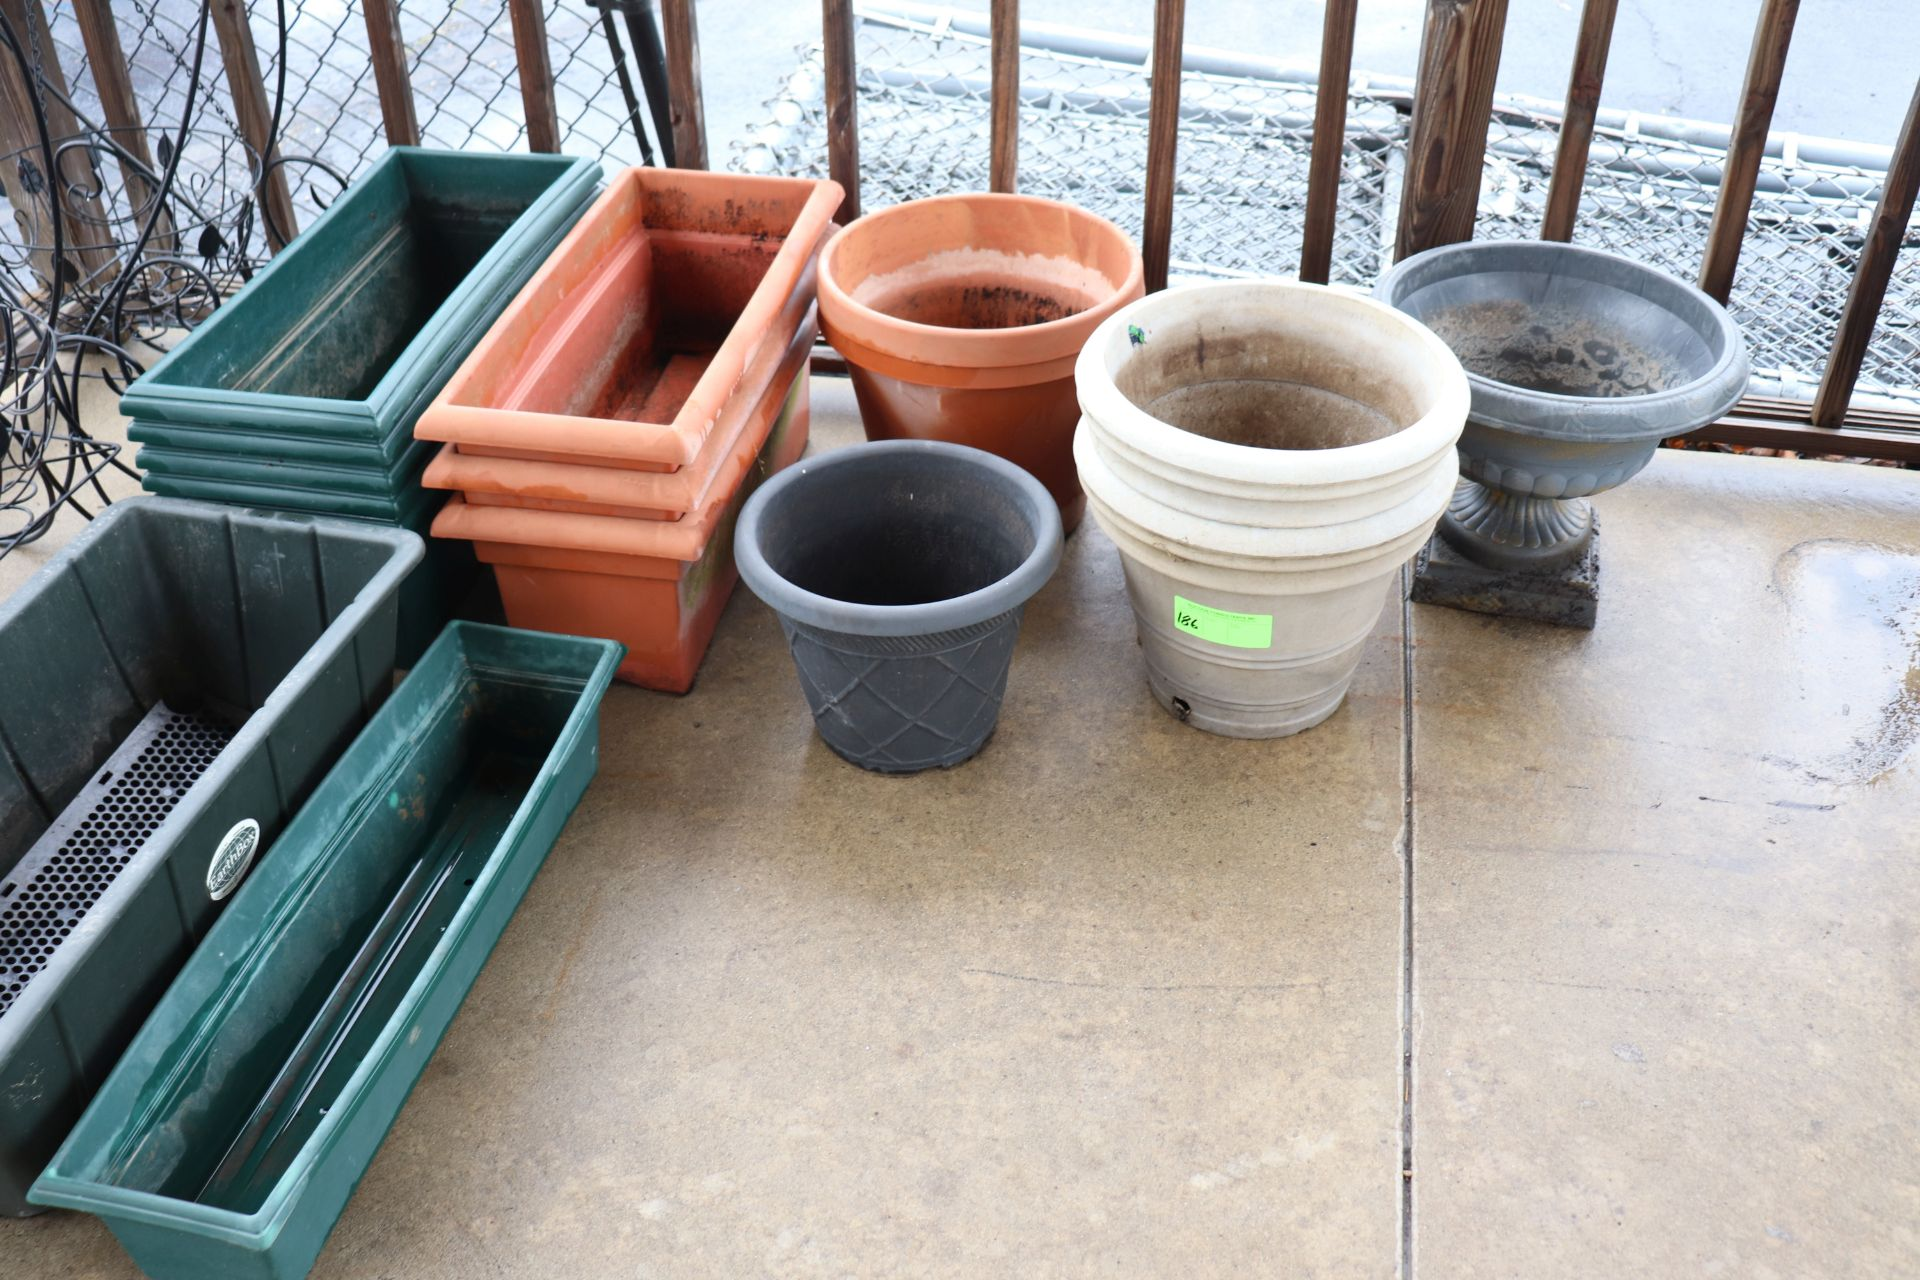 All plastic planters pictured